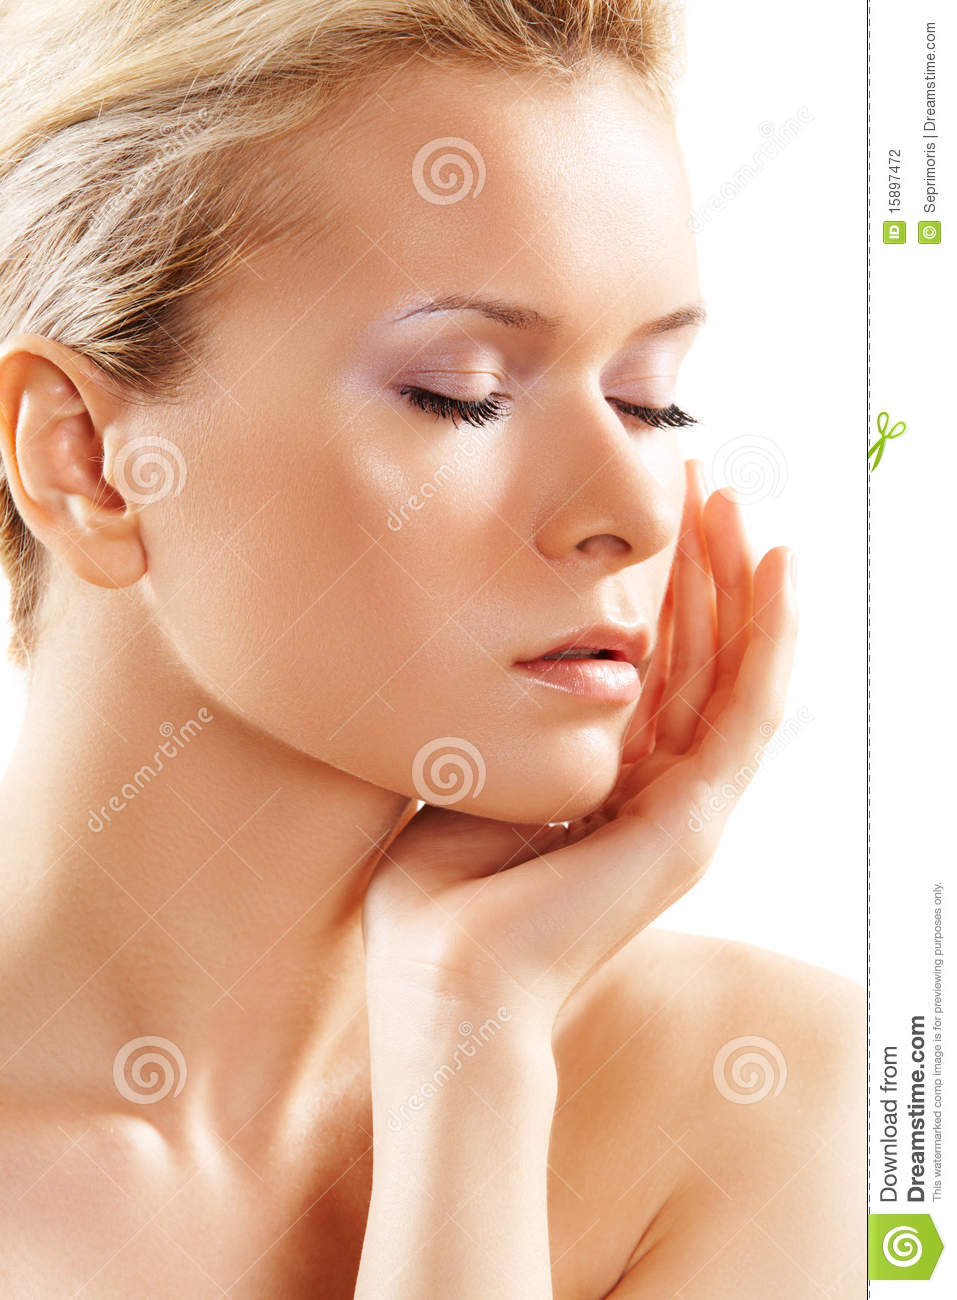 Wellness Amp Spa Sensual Model With Clean Skin Stock Photography Image 15897472